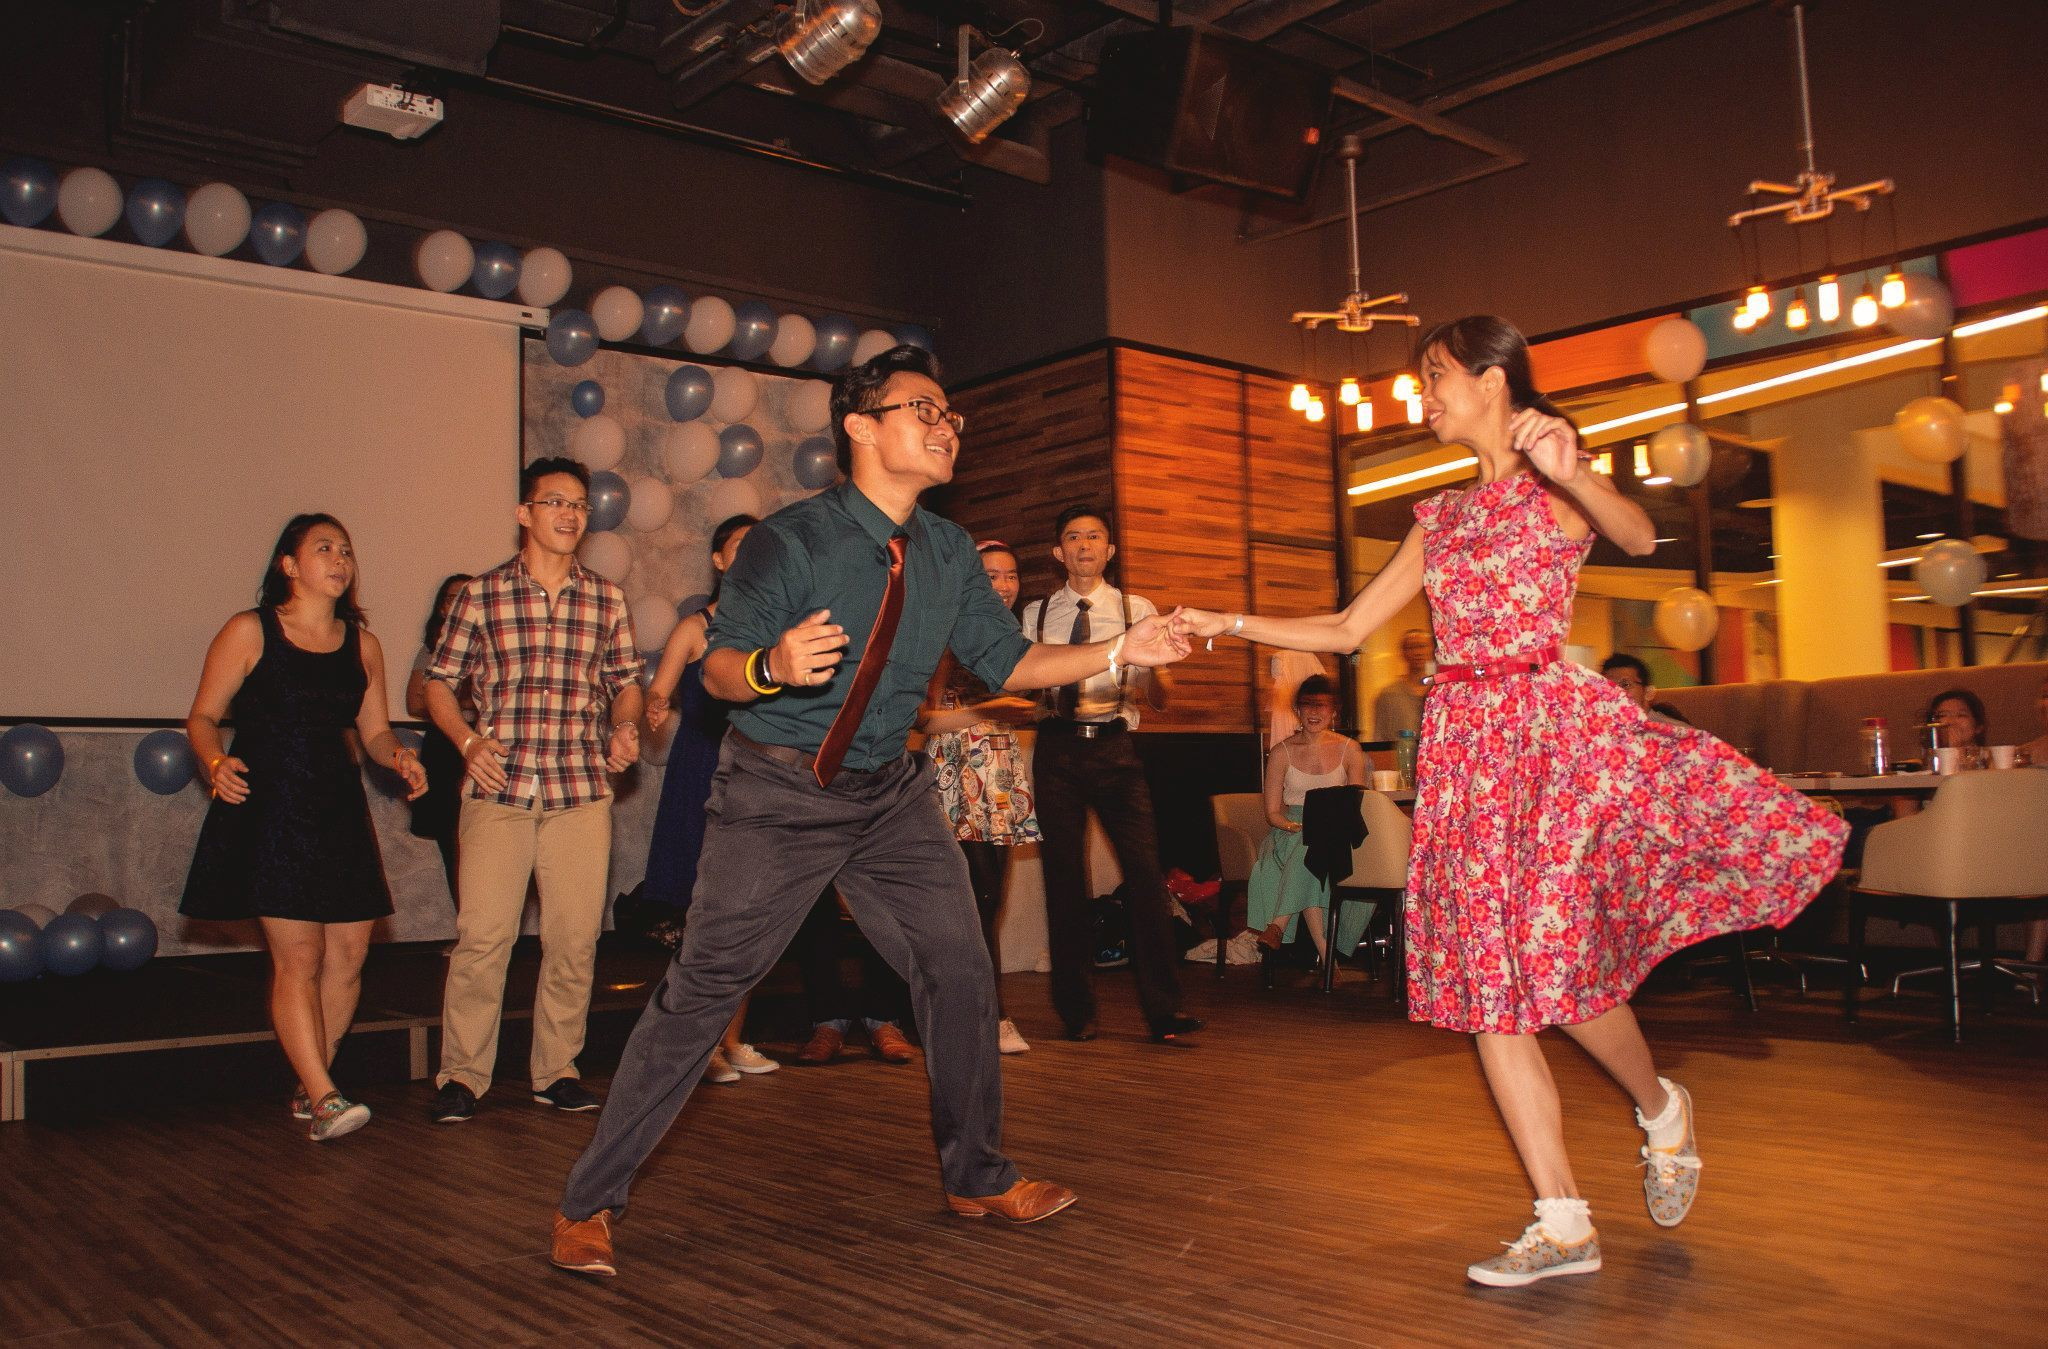 Lindy hop workshop